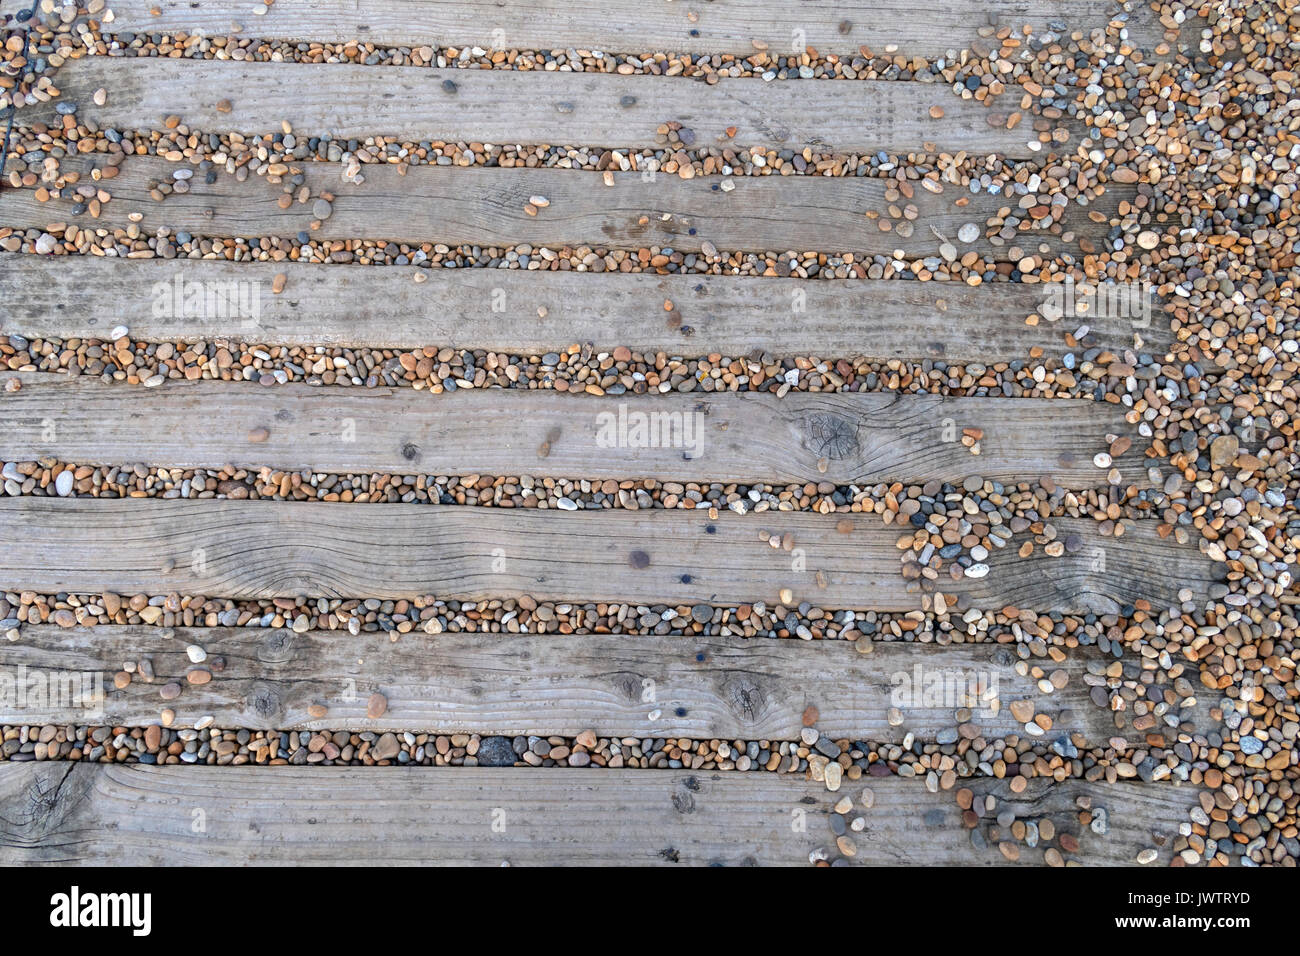 Slippery footpath made from strips of wood filled with tiny pebbles. - Stock Image